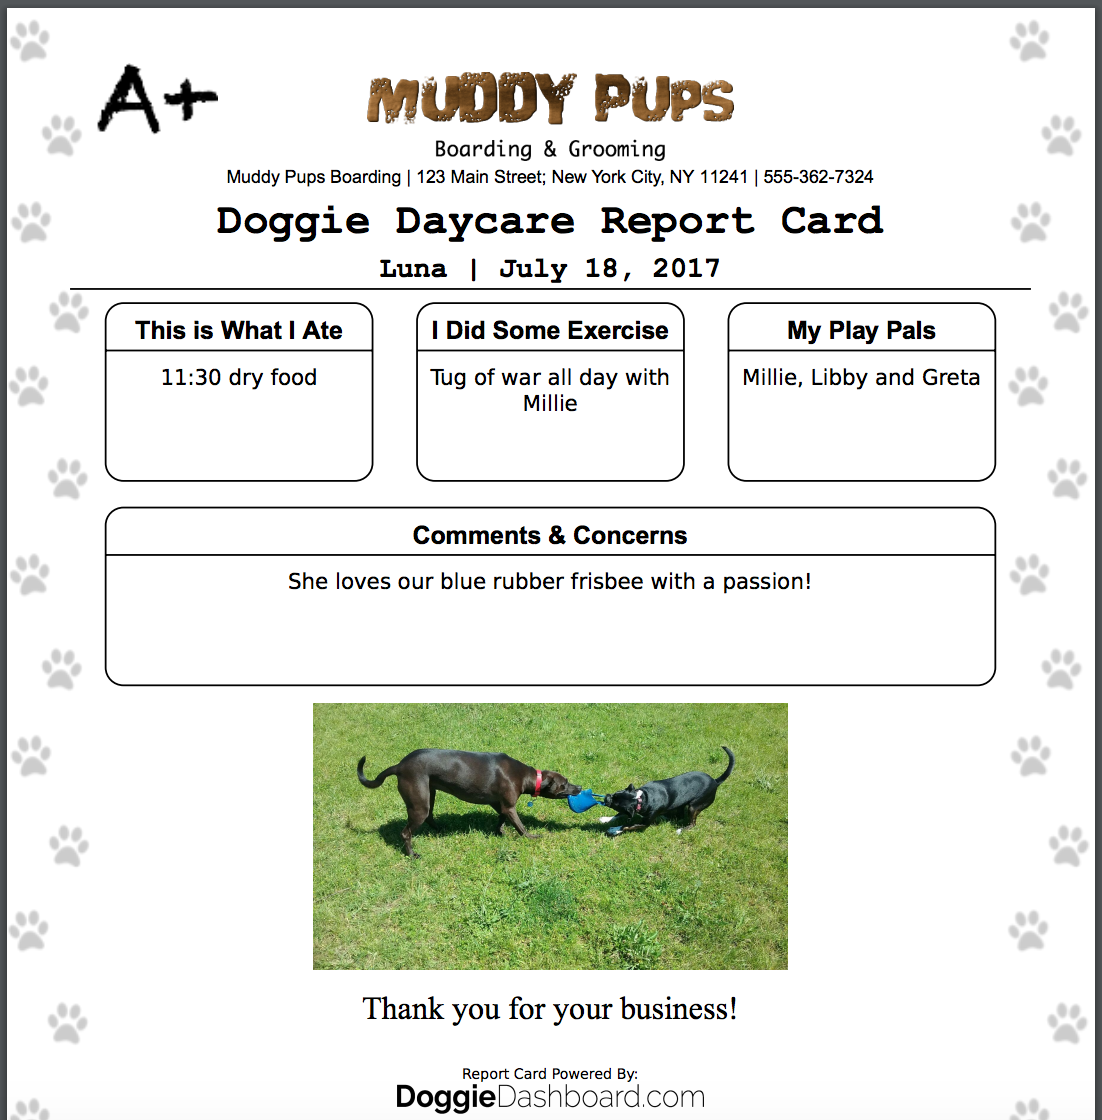 DoggieDashboard Free Dog Daycare Kennel Boarding Software - What is invoice number on receipt online pet store